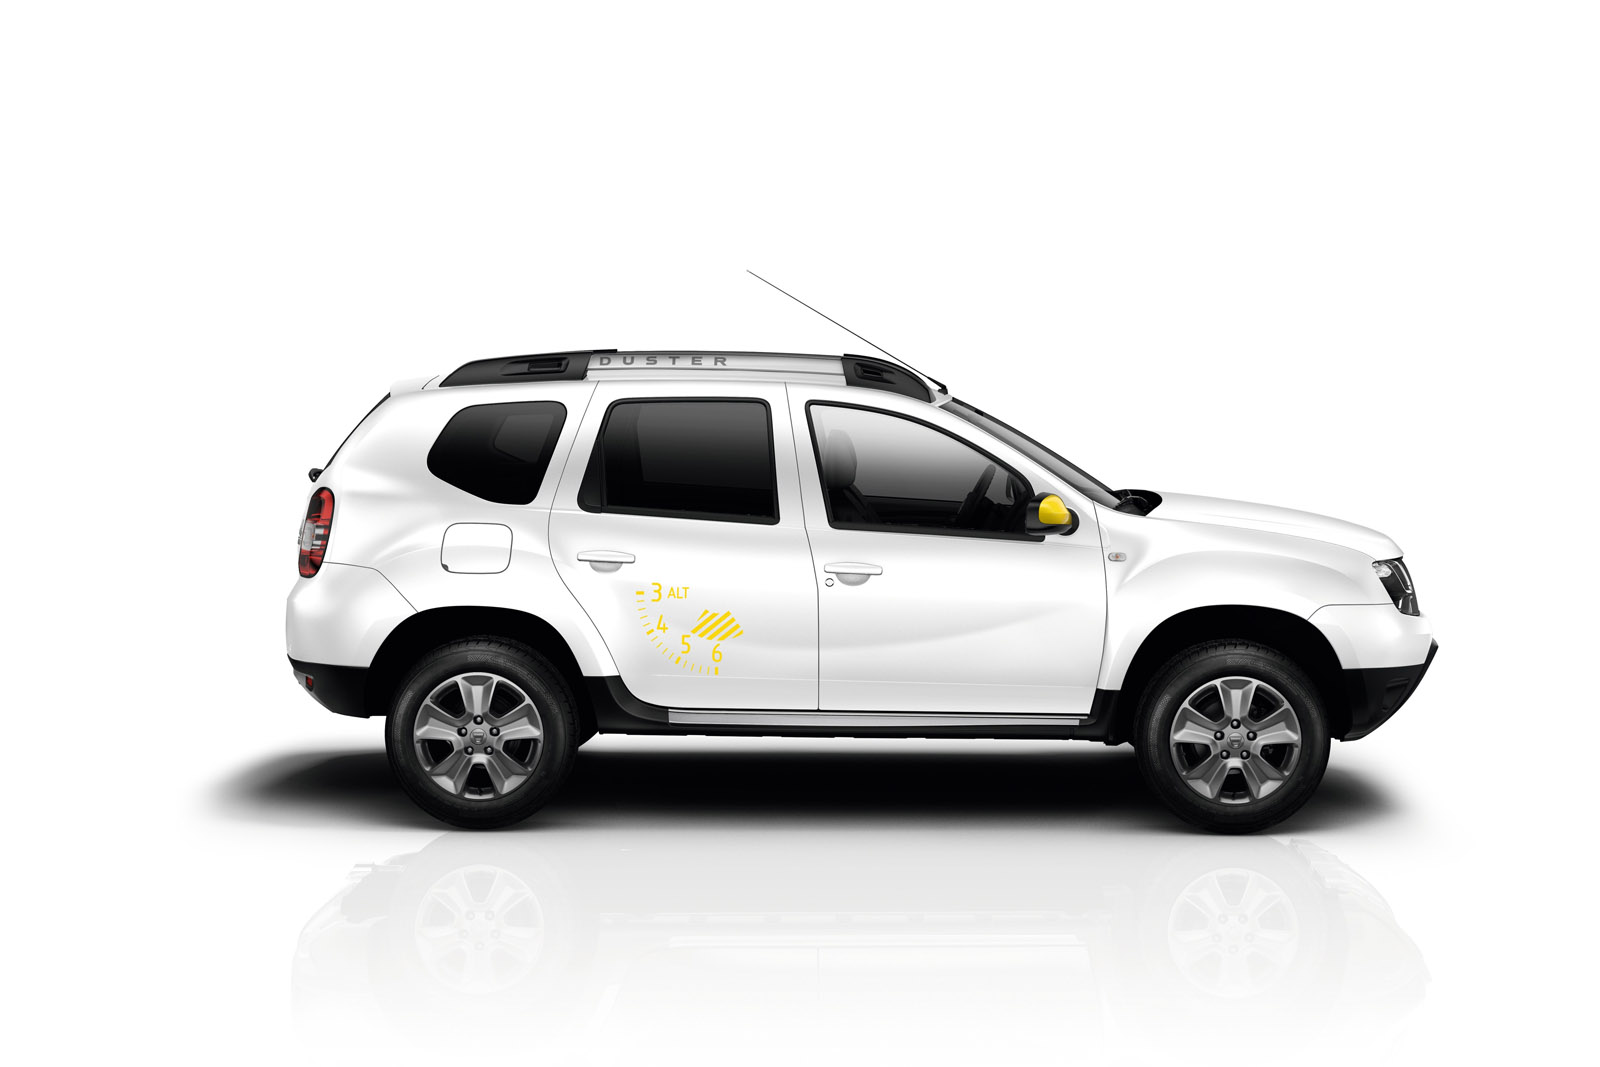 Yeni Dacia Duster Air ve Sandero Black Touch Paris'te ...